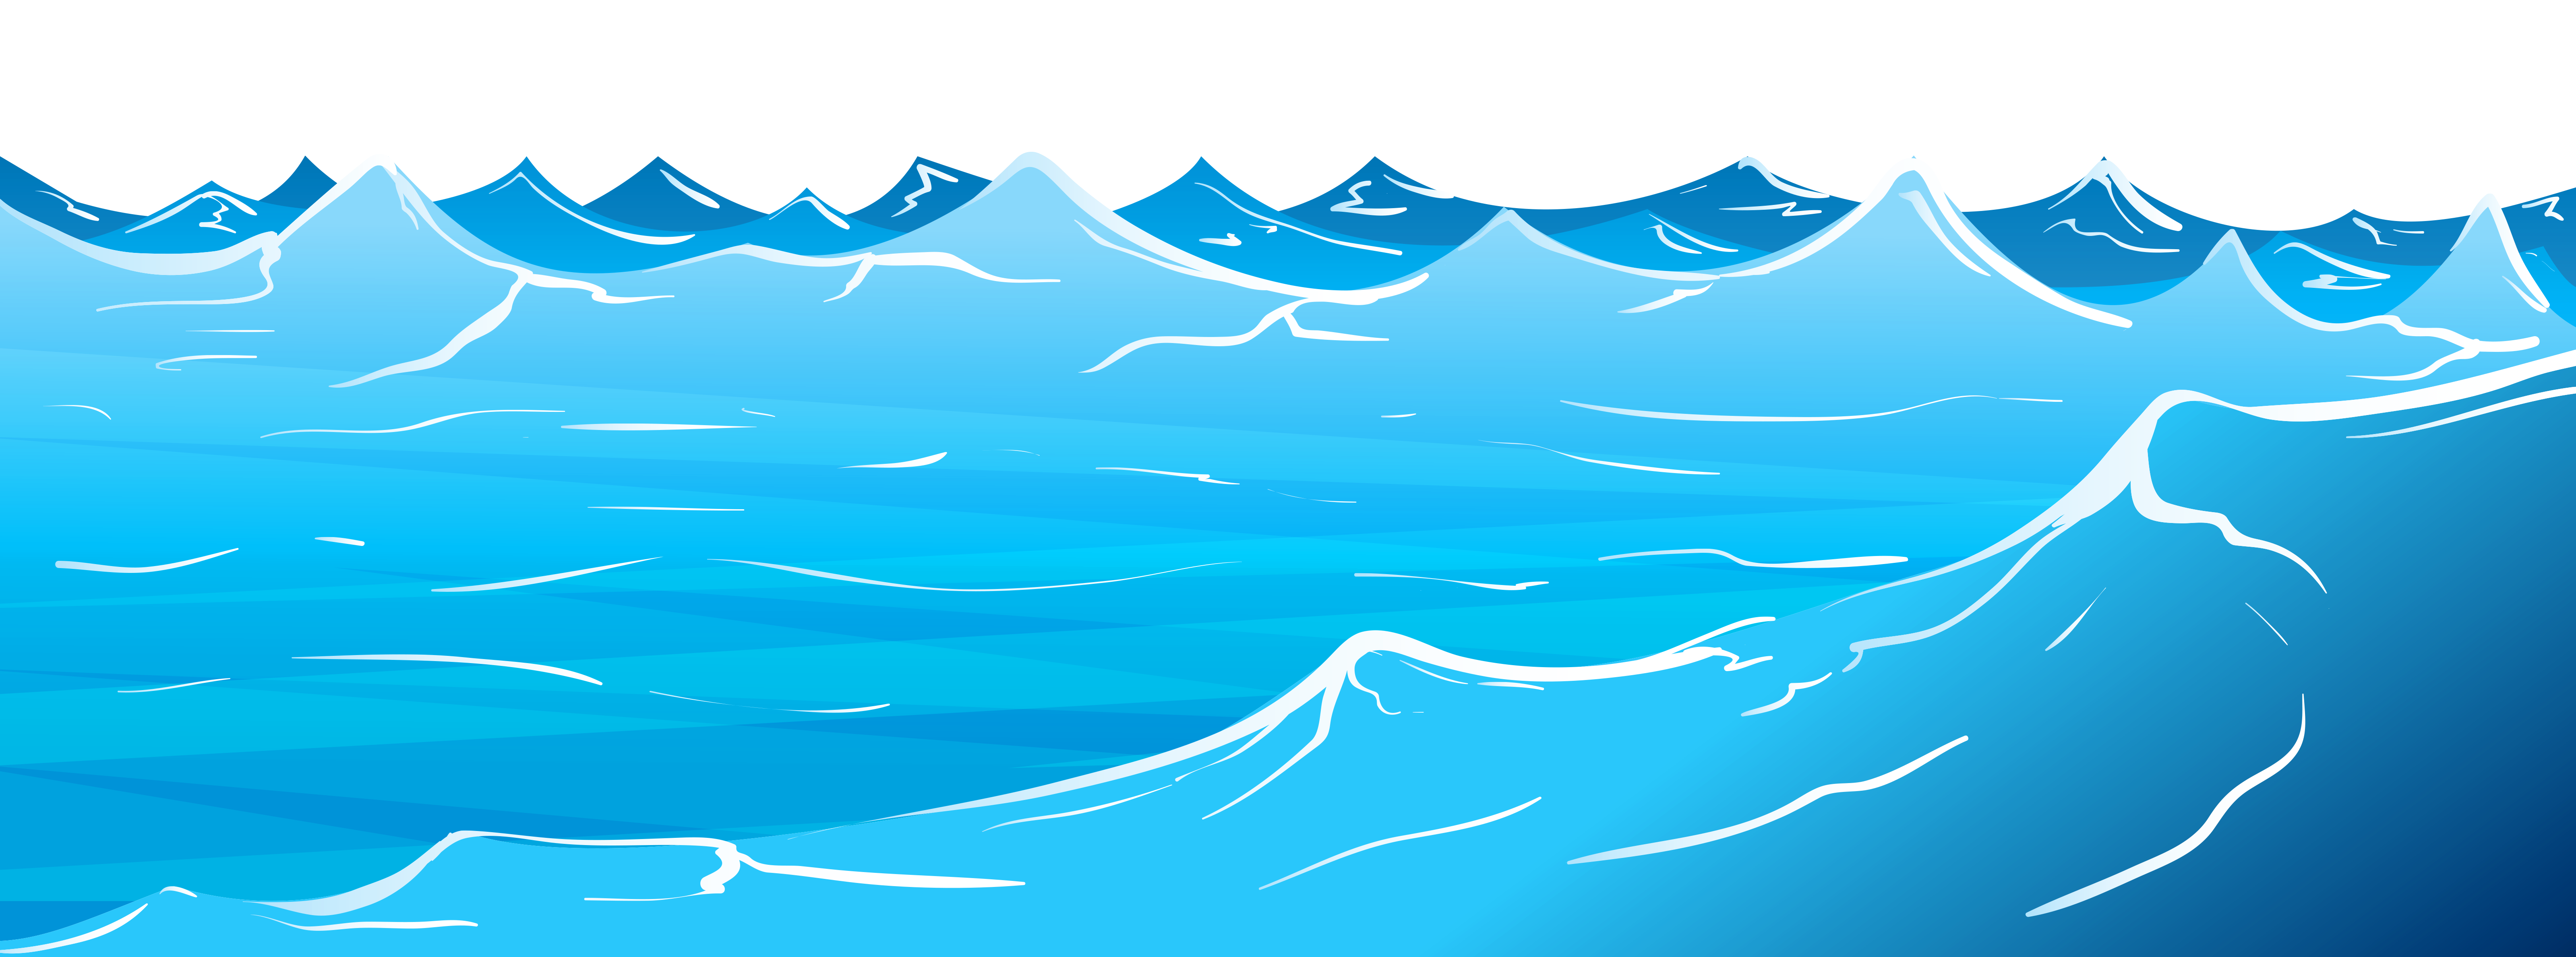 Sea clipart #4, Download drawings